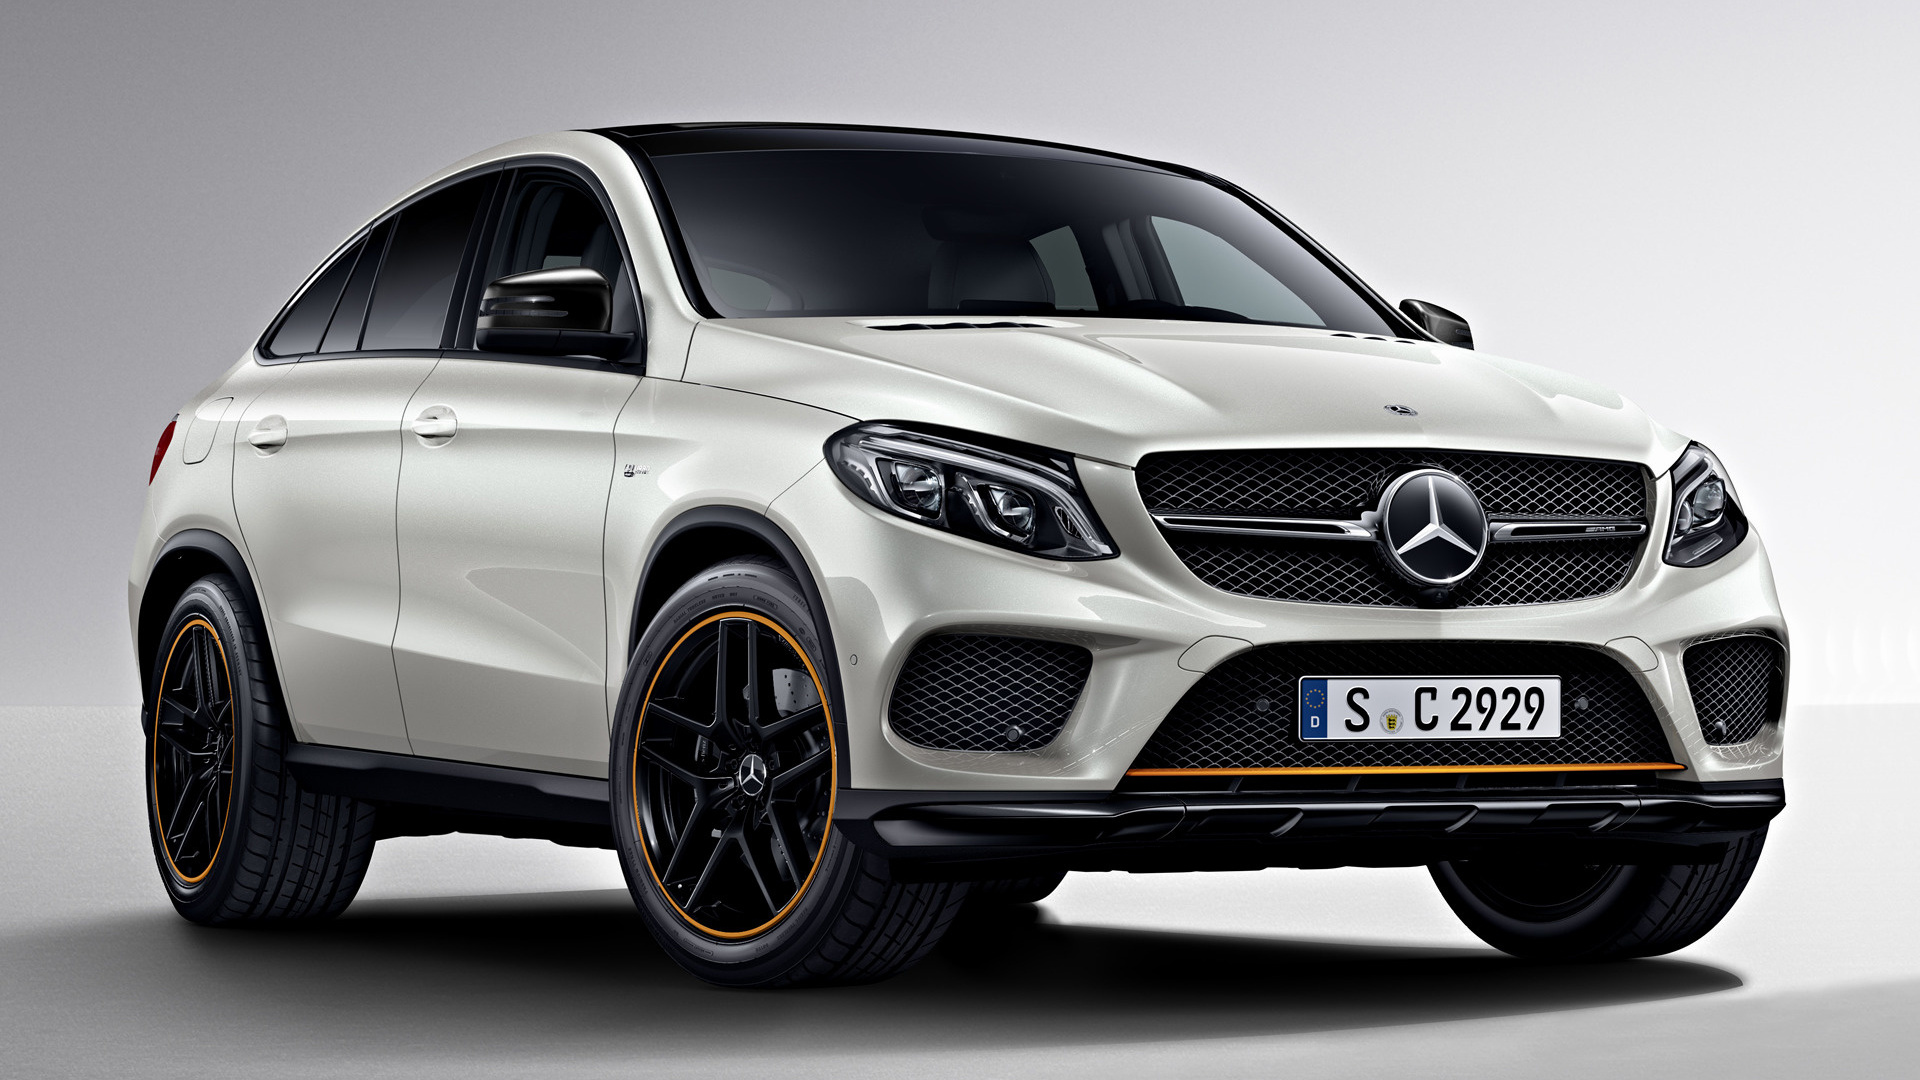 mercedes amg gle 43 coupe orangeart edition 2017 wallpapers and hd images car pixel. Black Bedroom Furniture Sets. Home Design Ideas